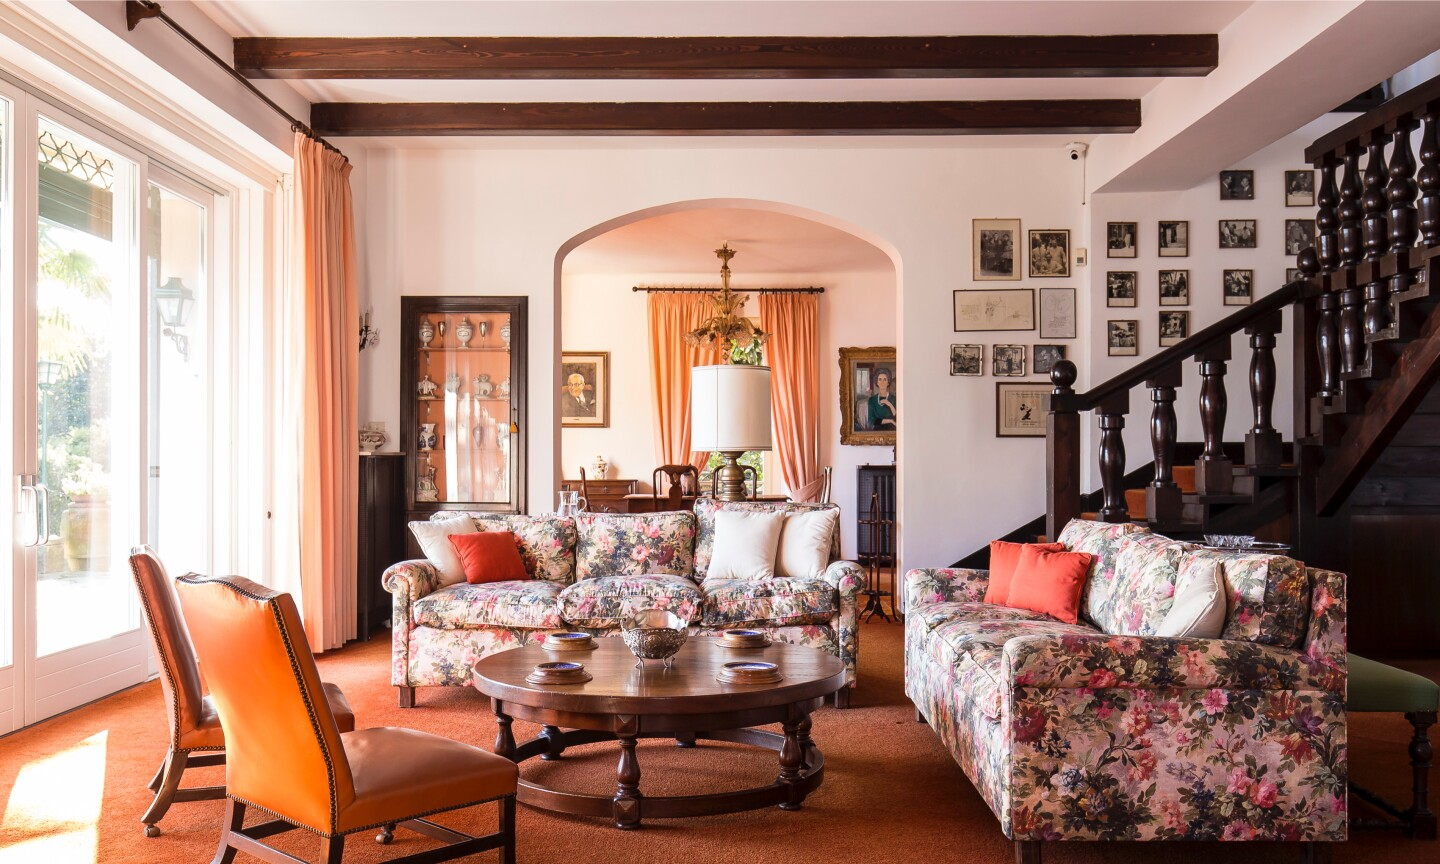 Overlooking Lake Maggiore, the pink stucco home holds 20 bedrooms and 12 bathrooms in more than 15,000 square feet.